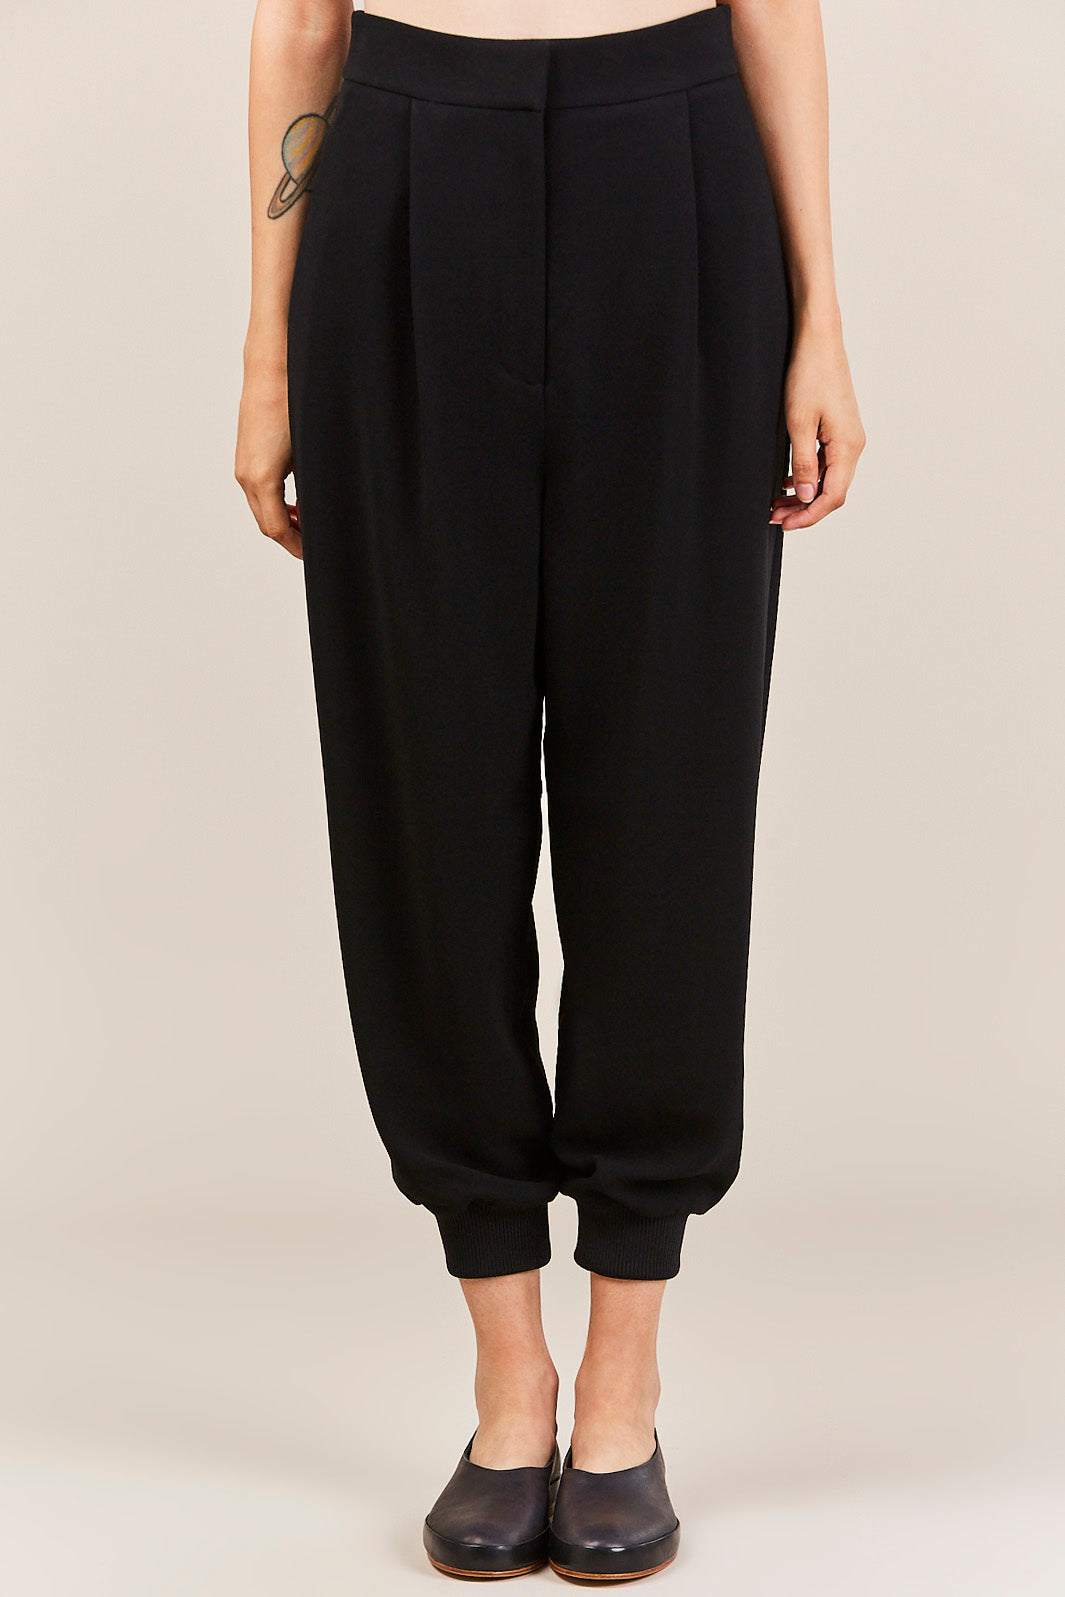 Tibi - Triacetate High Waisted Pants with Ribbed Hem, Black